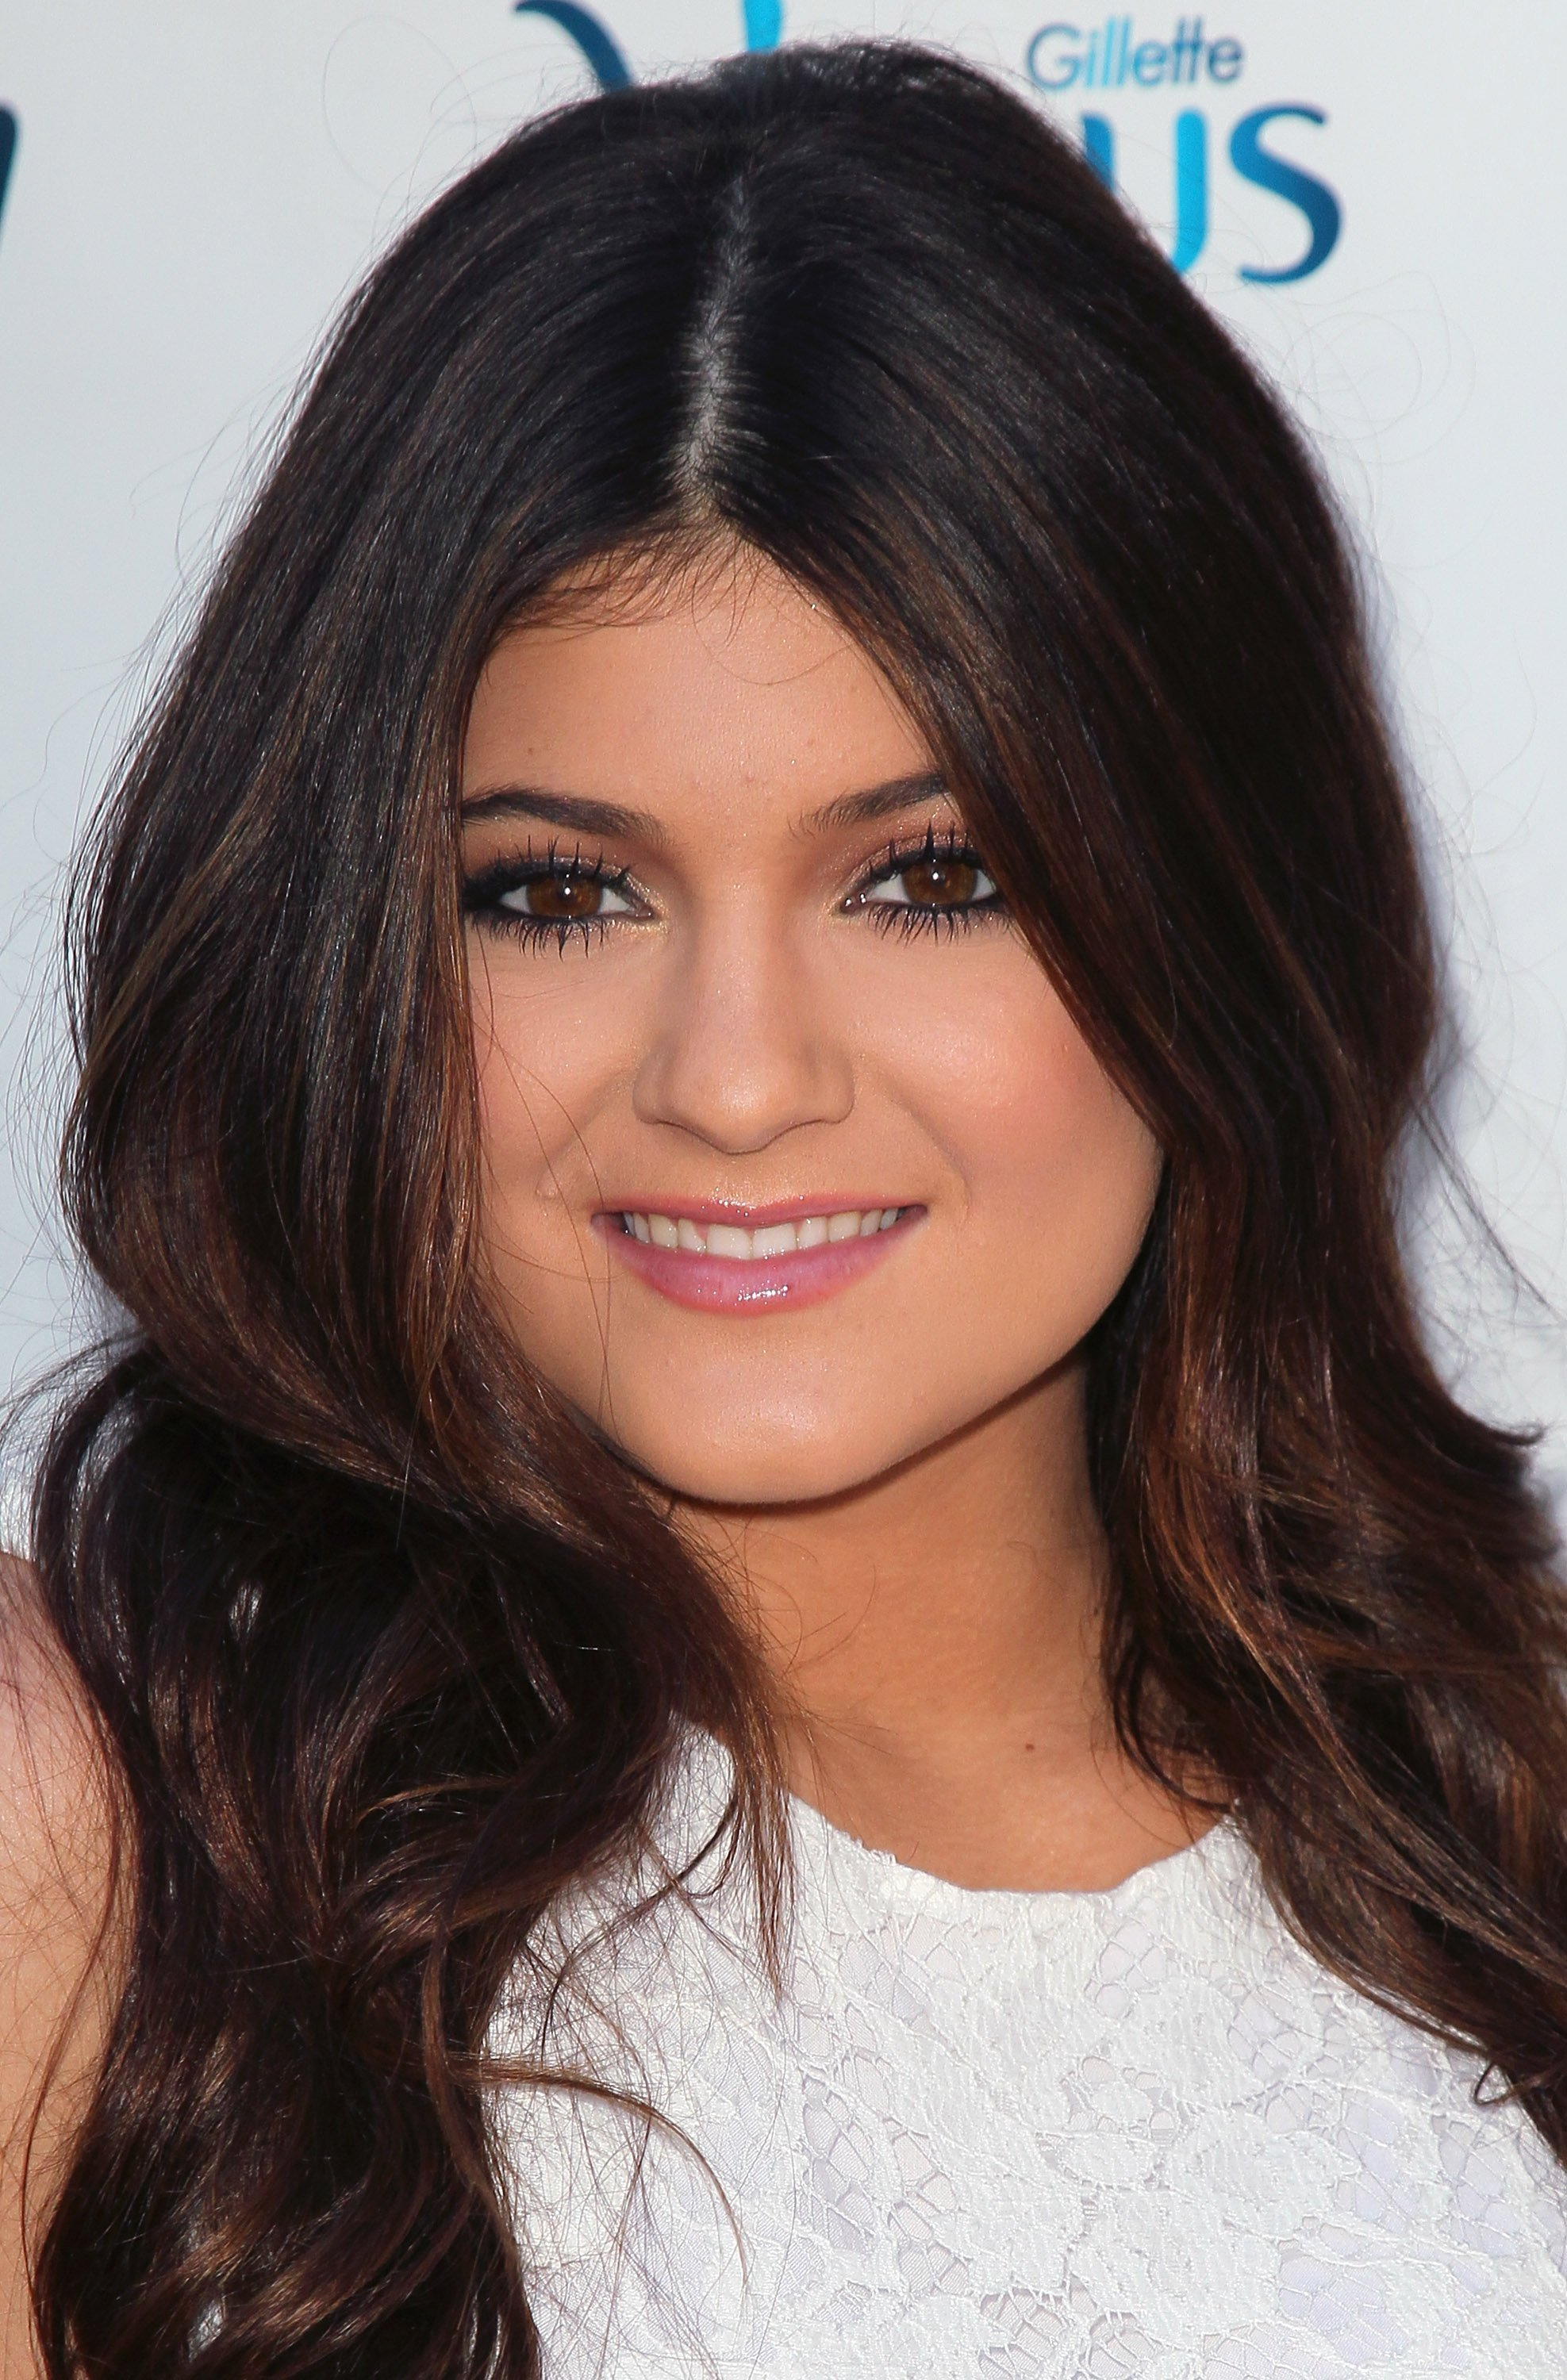 Kylie Jenner at Seventeen Magazine event at the W Hotel Westwood on August 2, 2012. | Photo: GettyImages